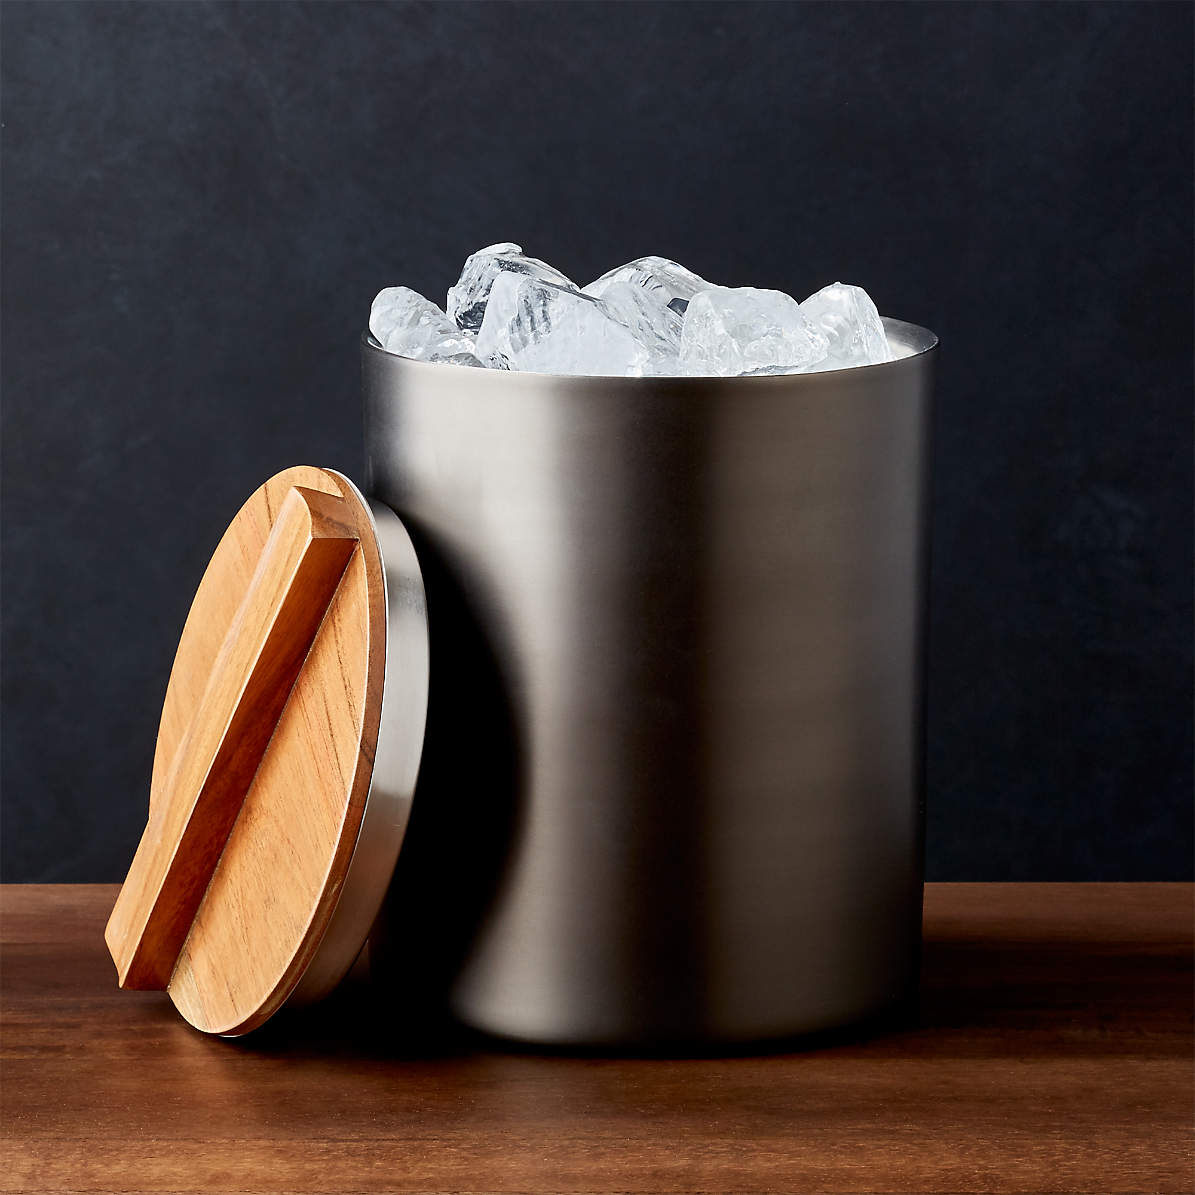 Fenton Graphite And Wood Ice Bucket Reviews Crate And Barrel